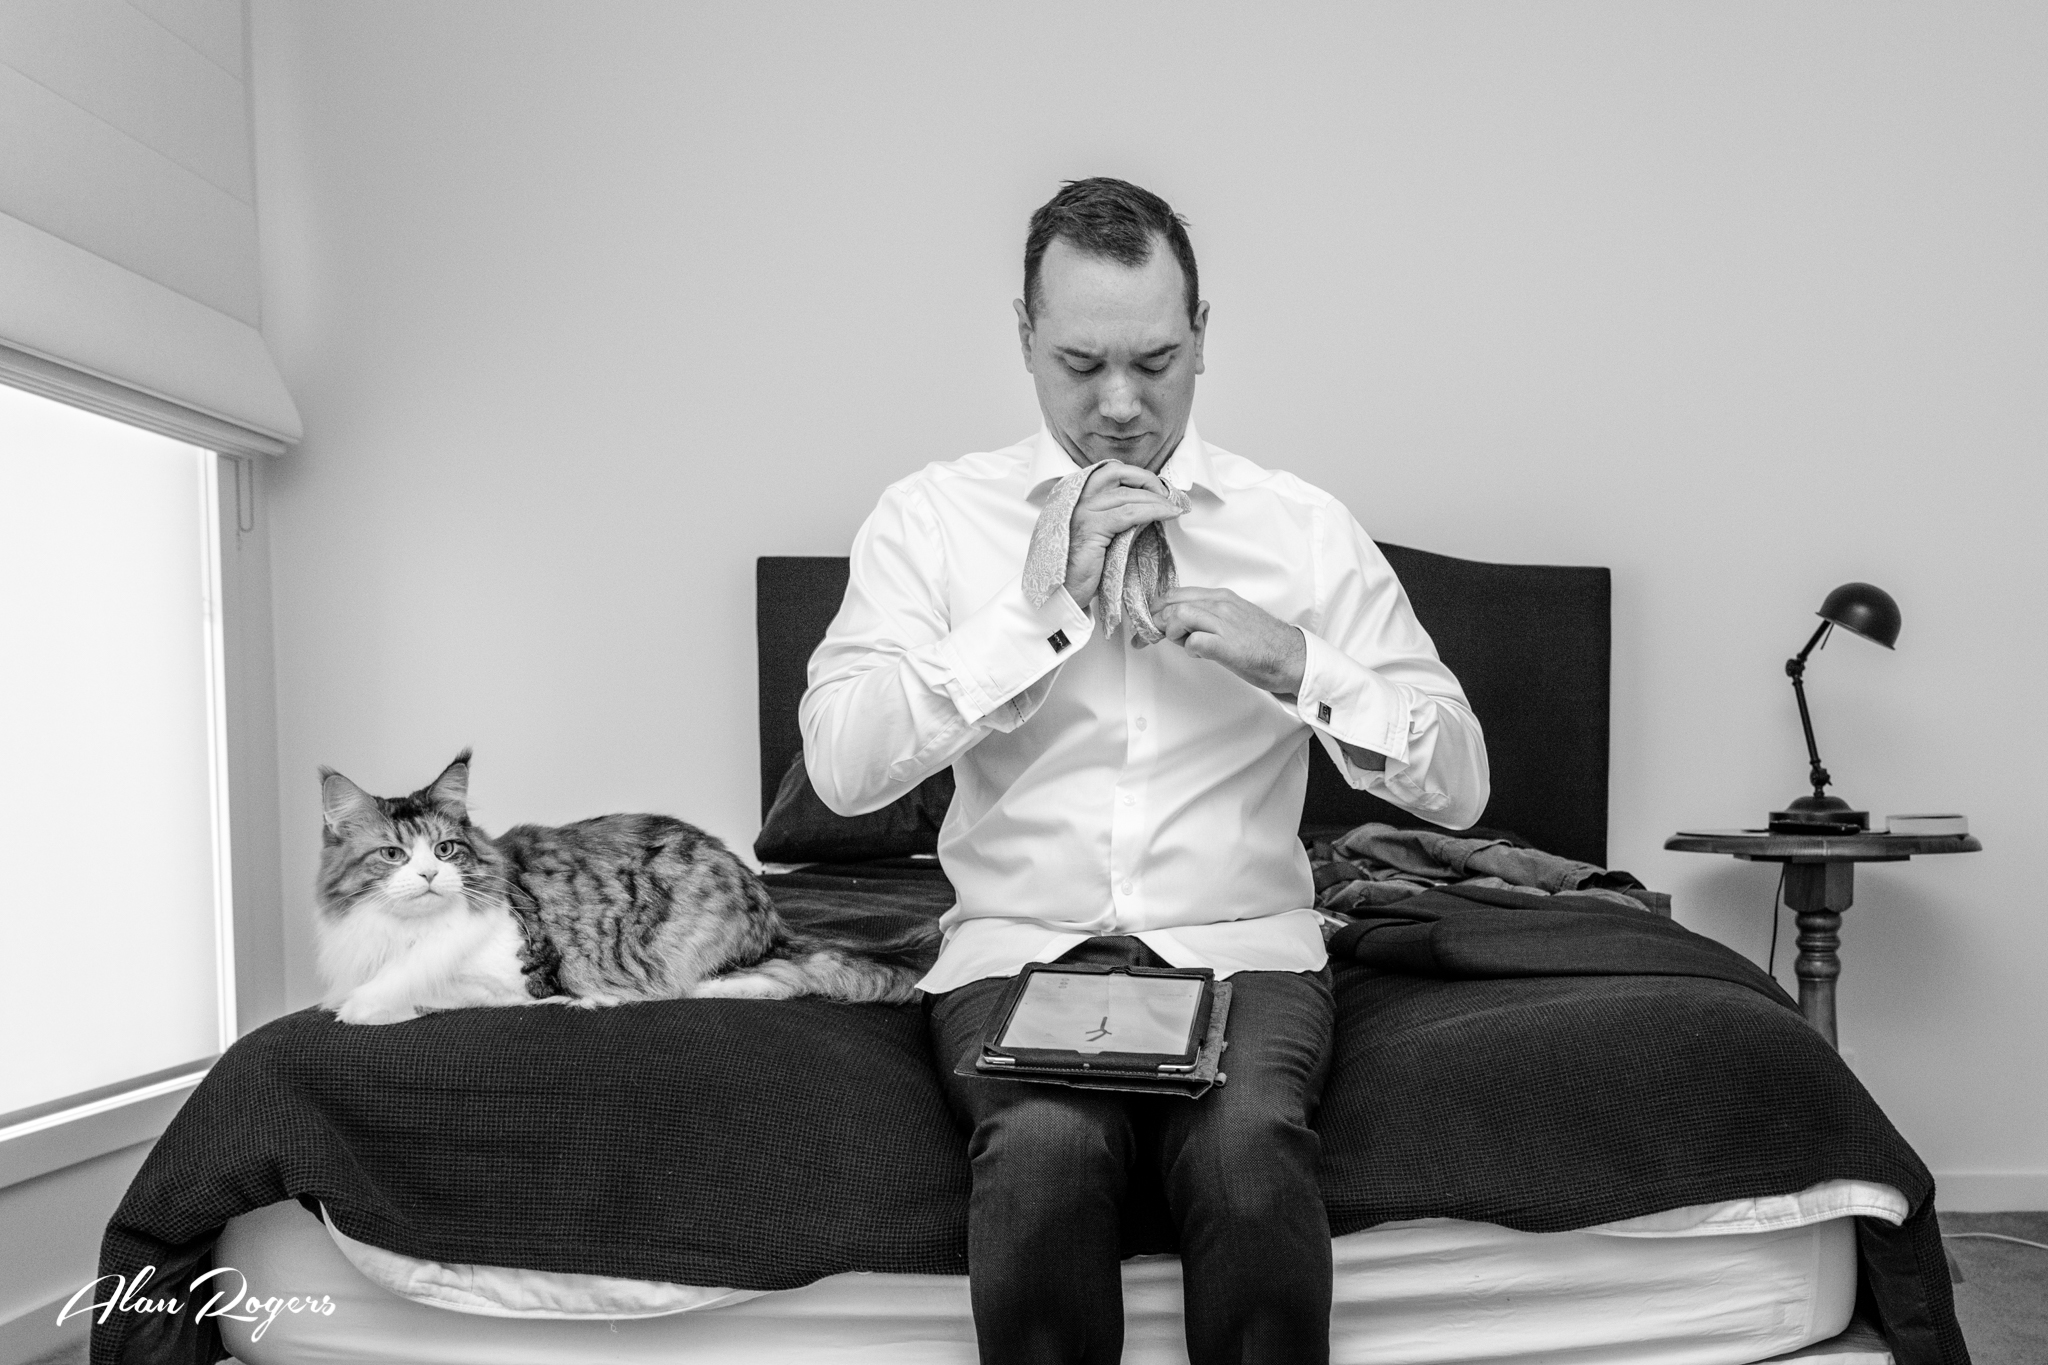 A Groom, his cat, an iPad, putting on the tie.